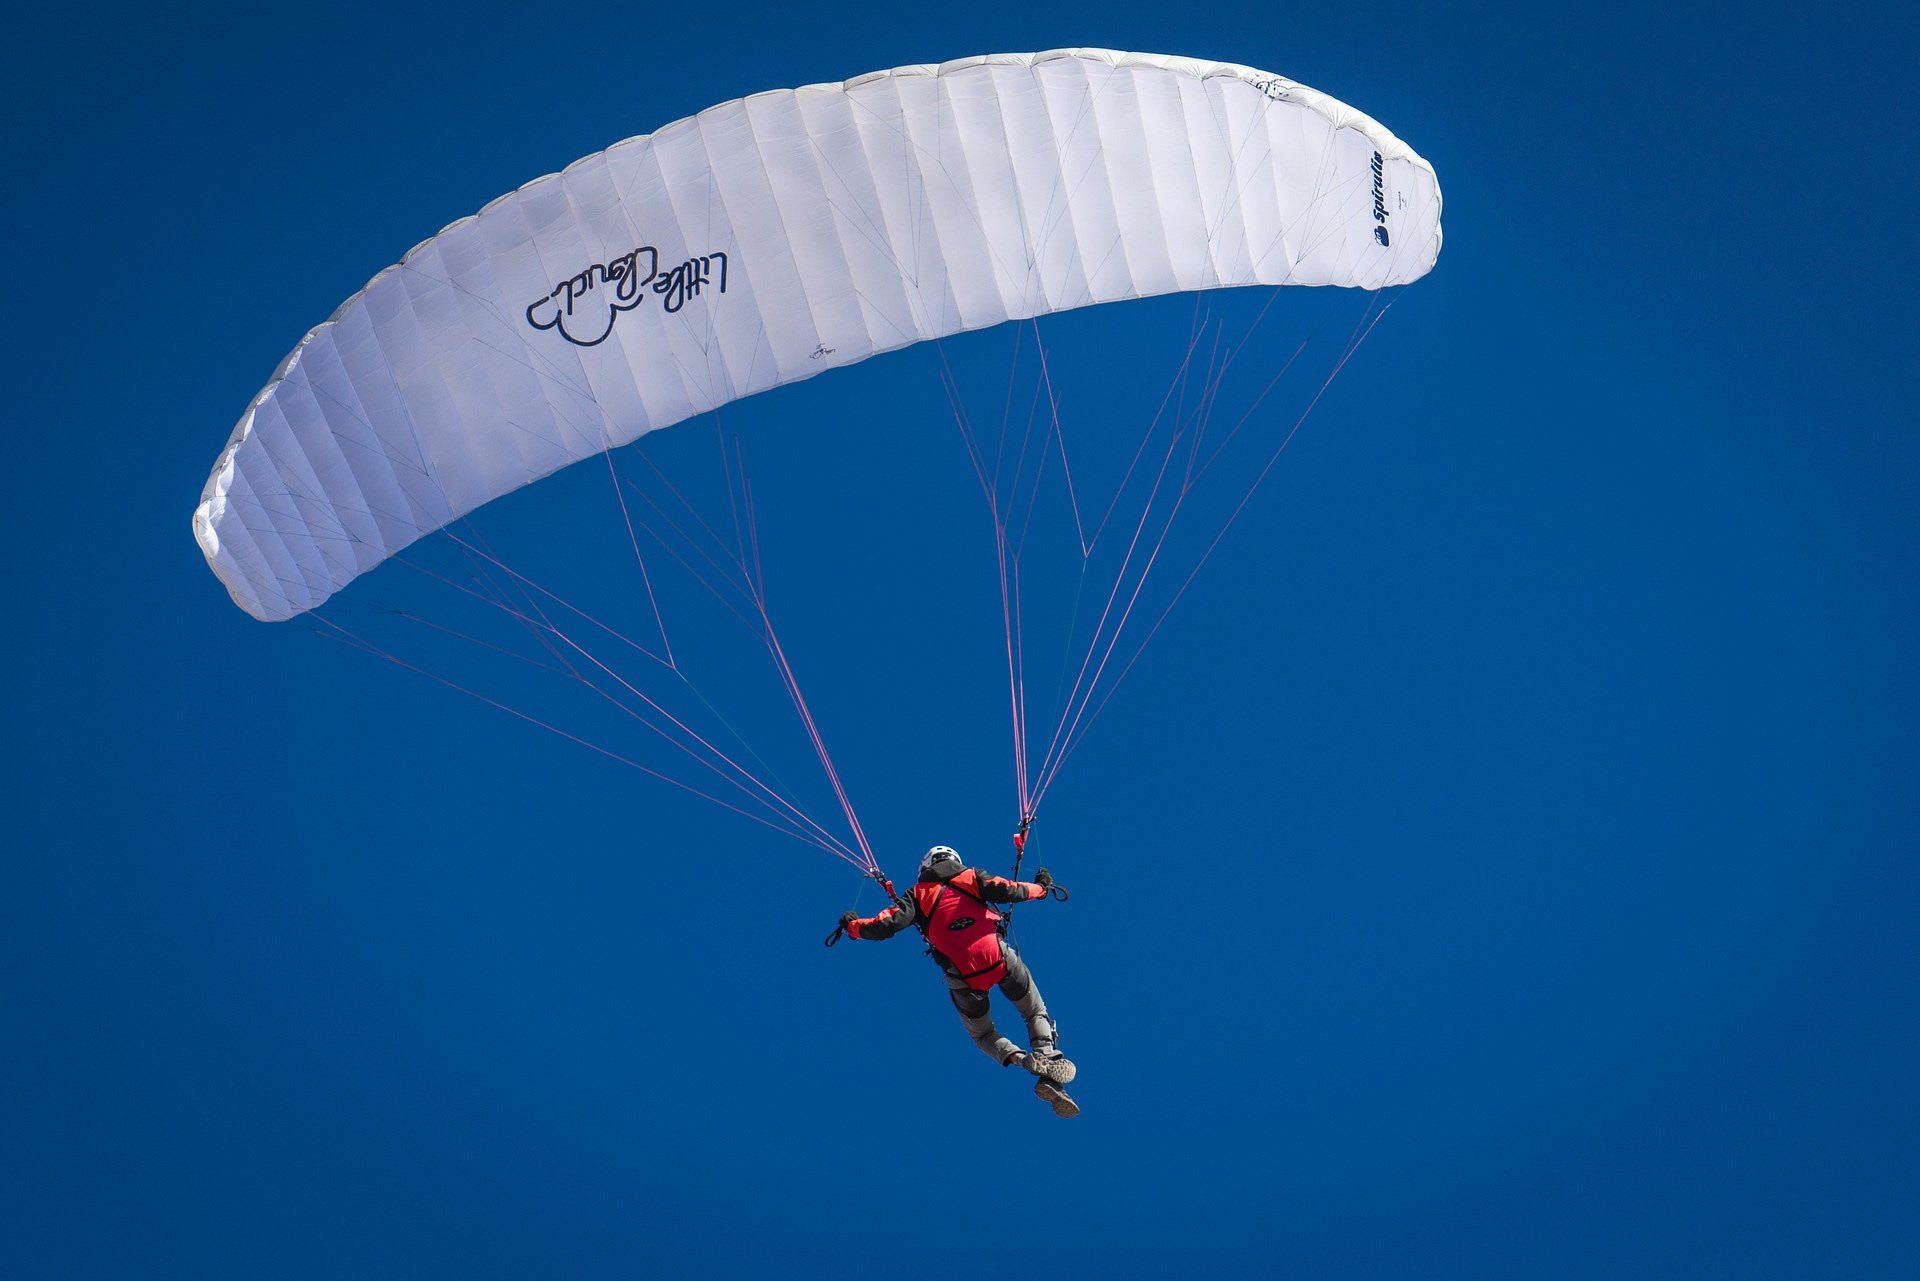 Sponsored Skydive